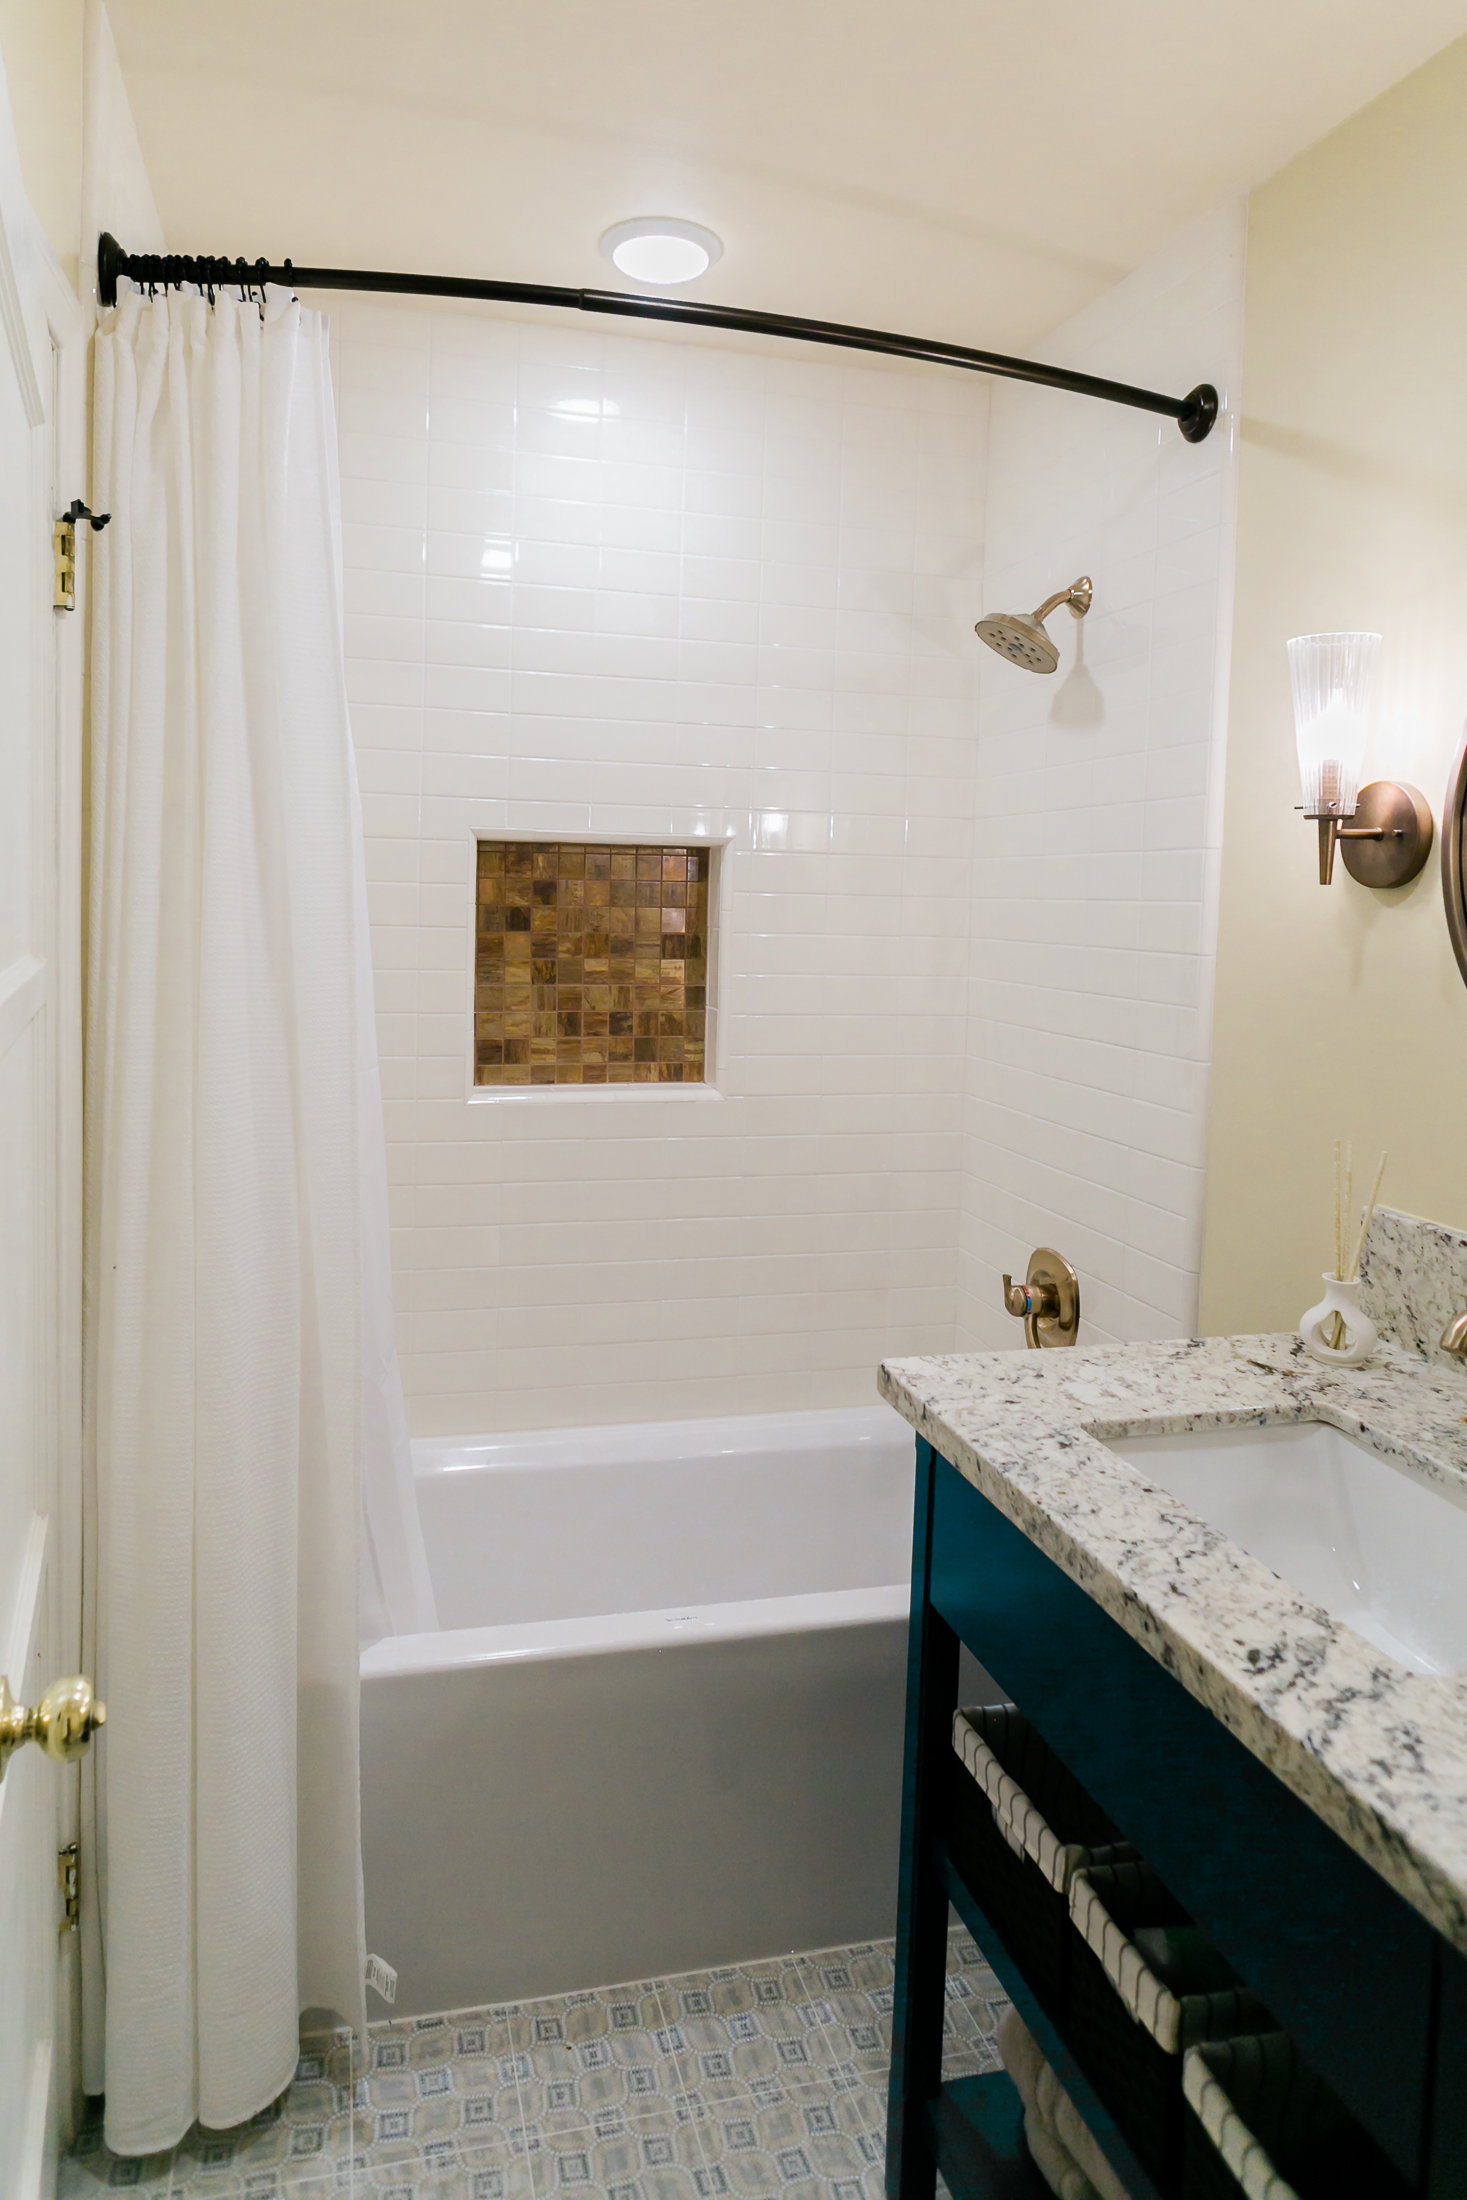 Earthy Bathroom, Bathroom Remodel, remodel, dmv interior designer, bowie maryland, washington dc, brass niche